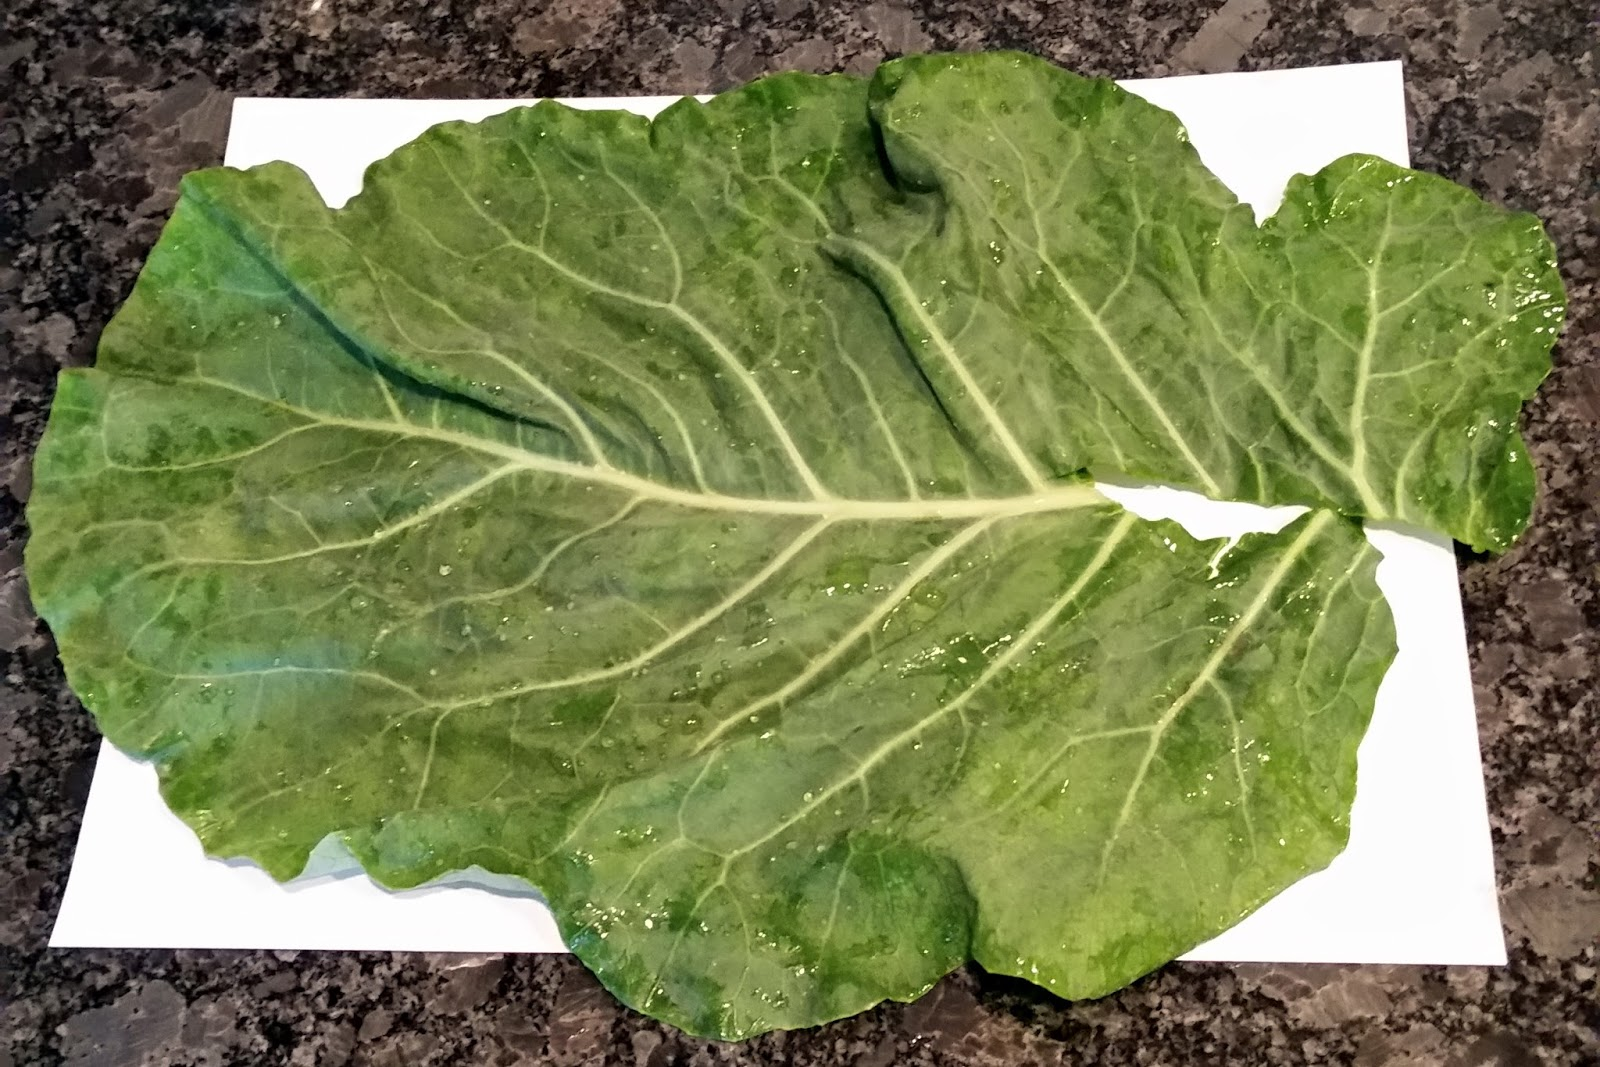 LaVonne Neff > LIVELY DUST: Kickin' collard greens (to the curb)